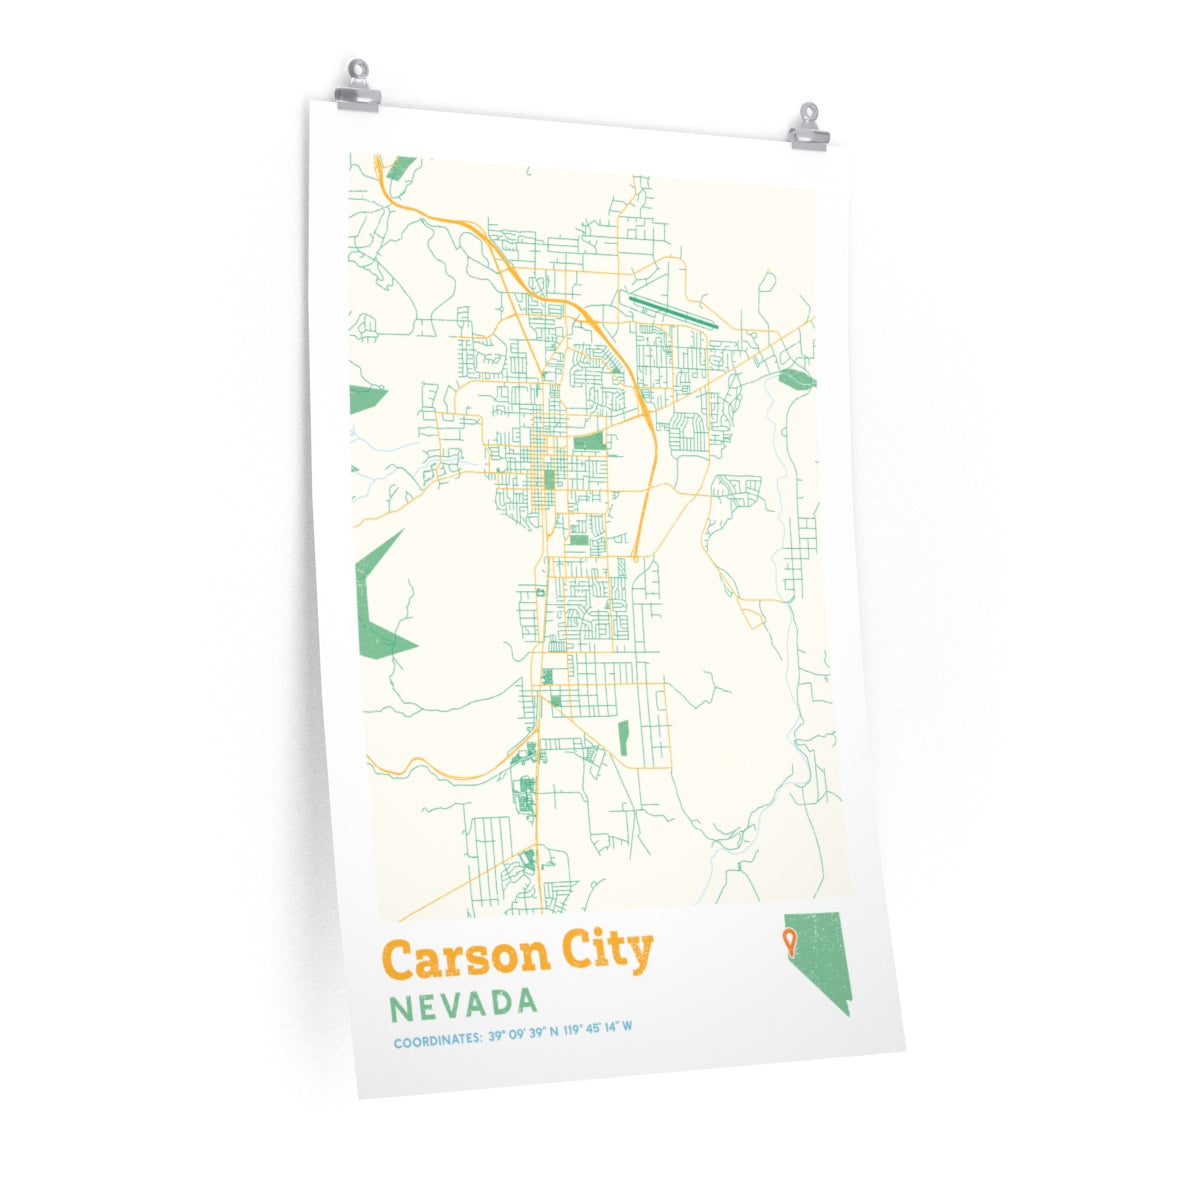 Carson City Nevada City Street Map Poster - Allegiant Goods Co.